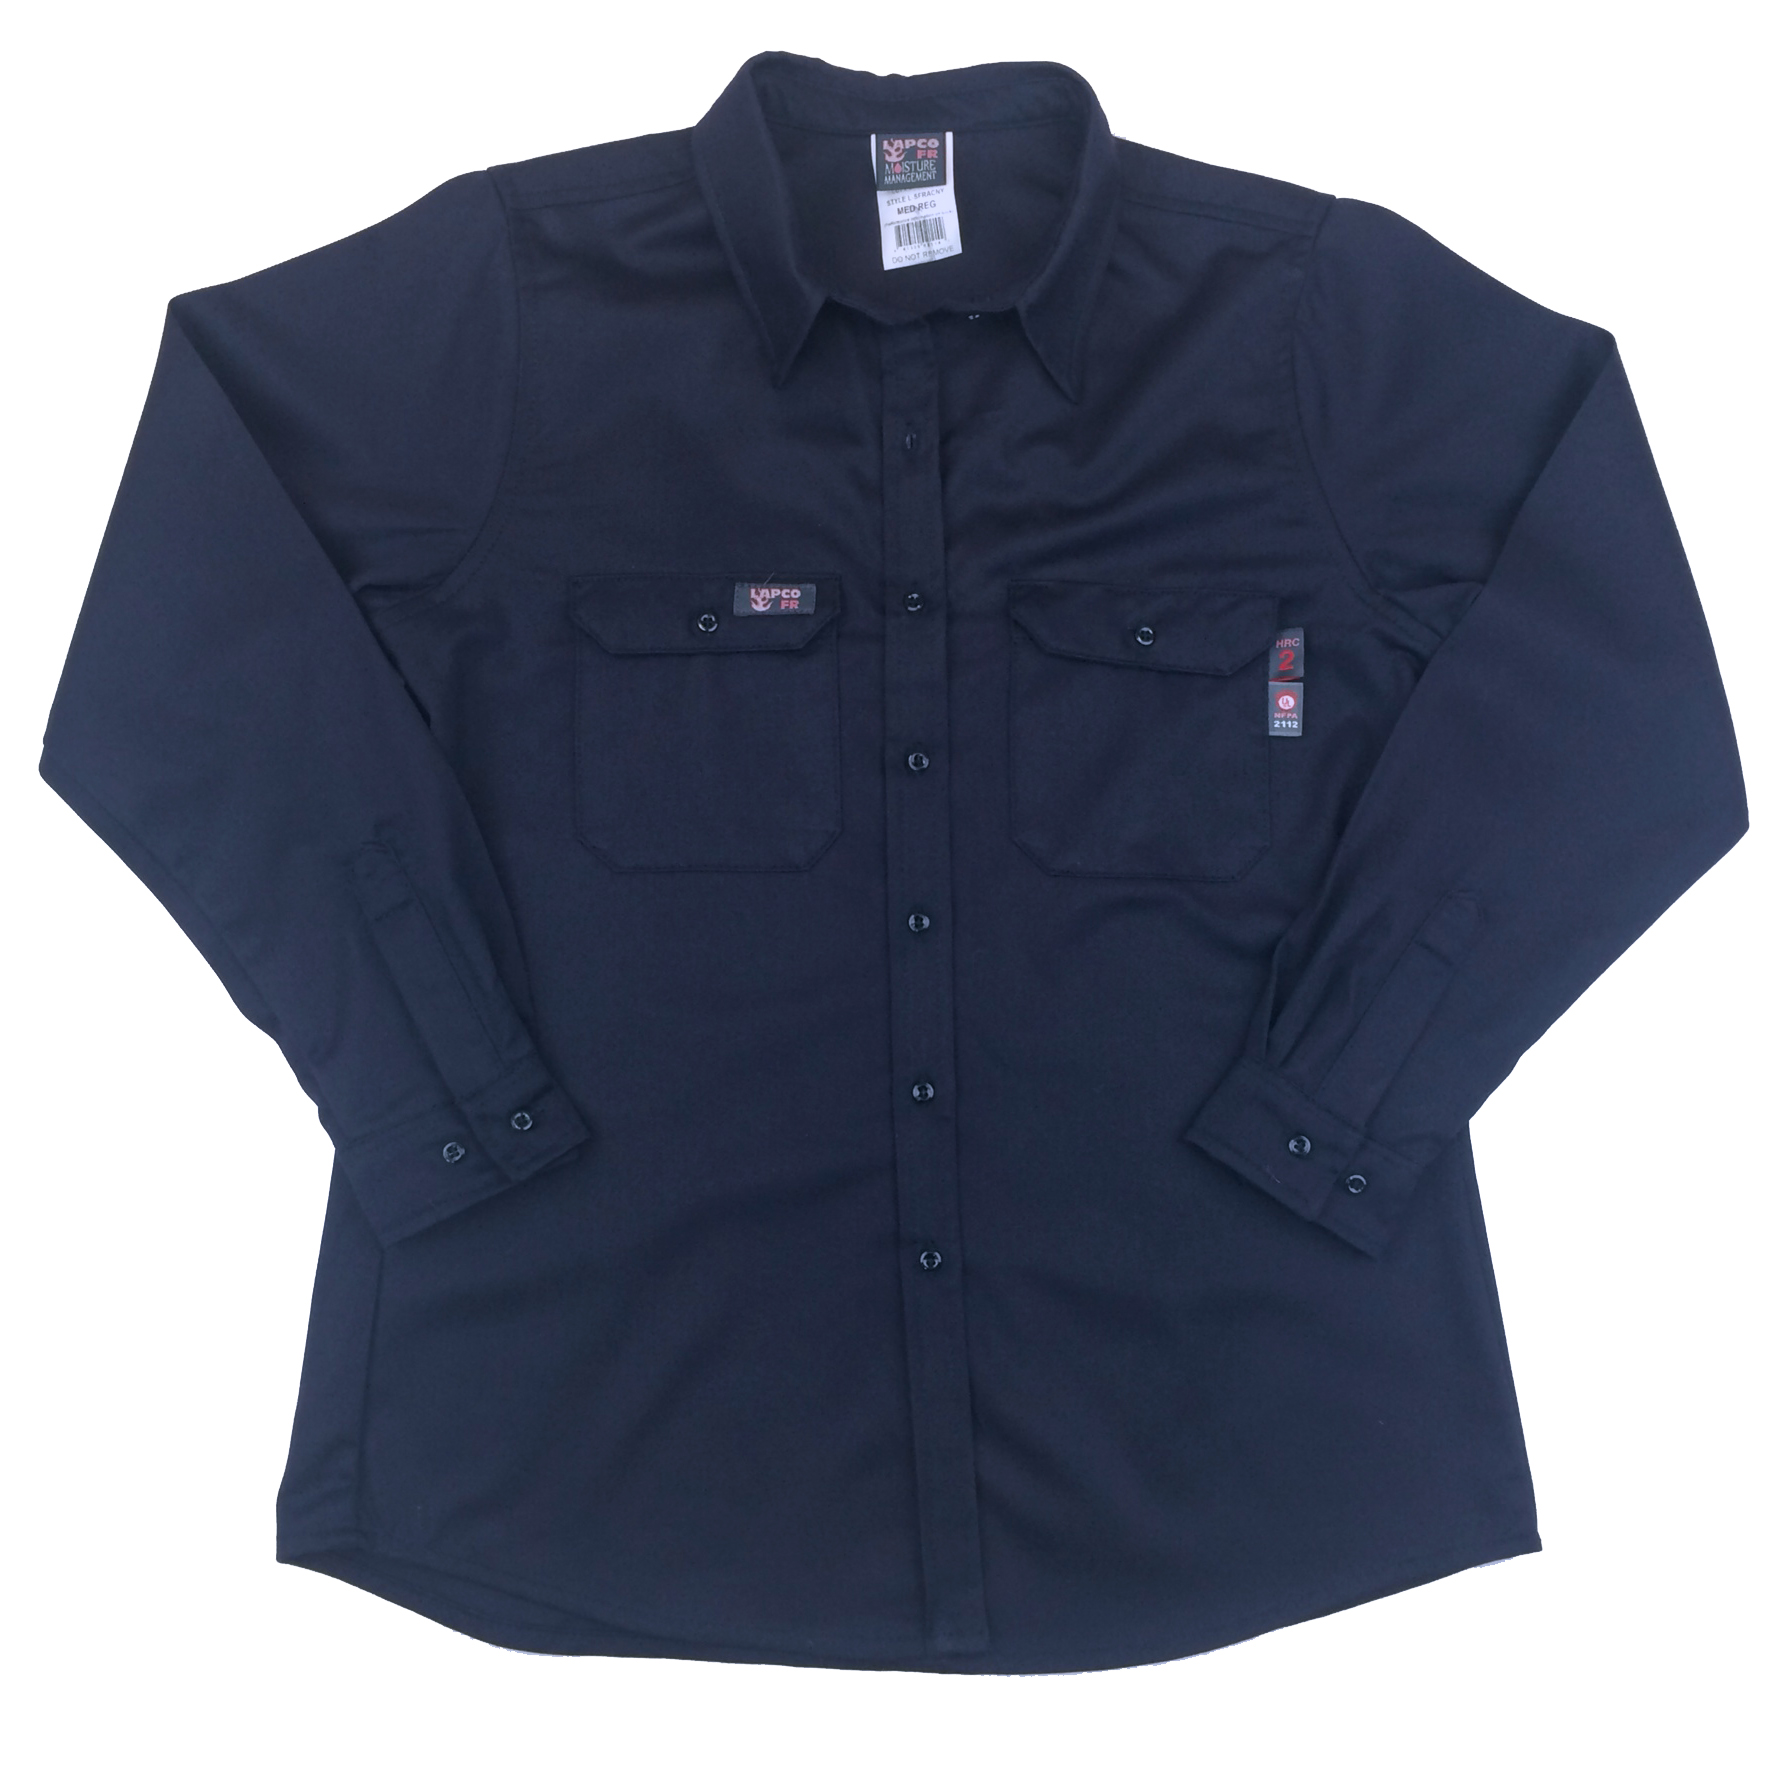 Lapco Ladies Fire Resistant Navy Uniform Shirt Lsfracny